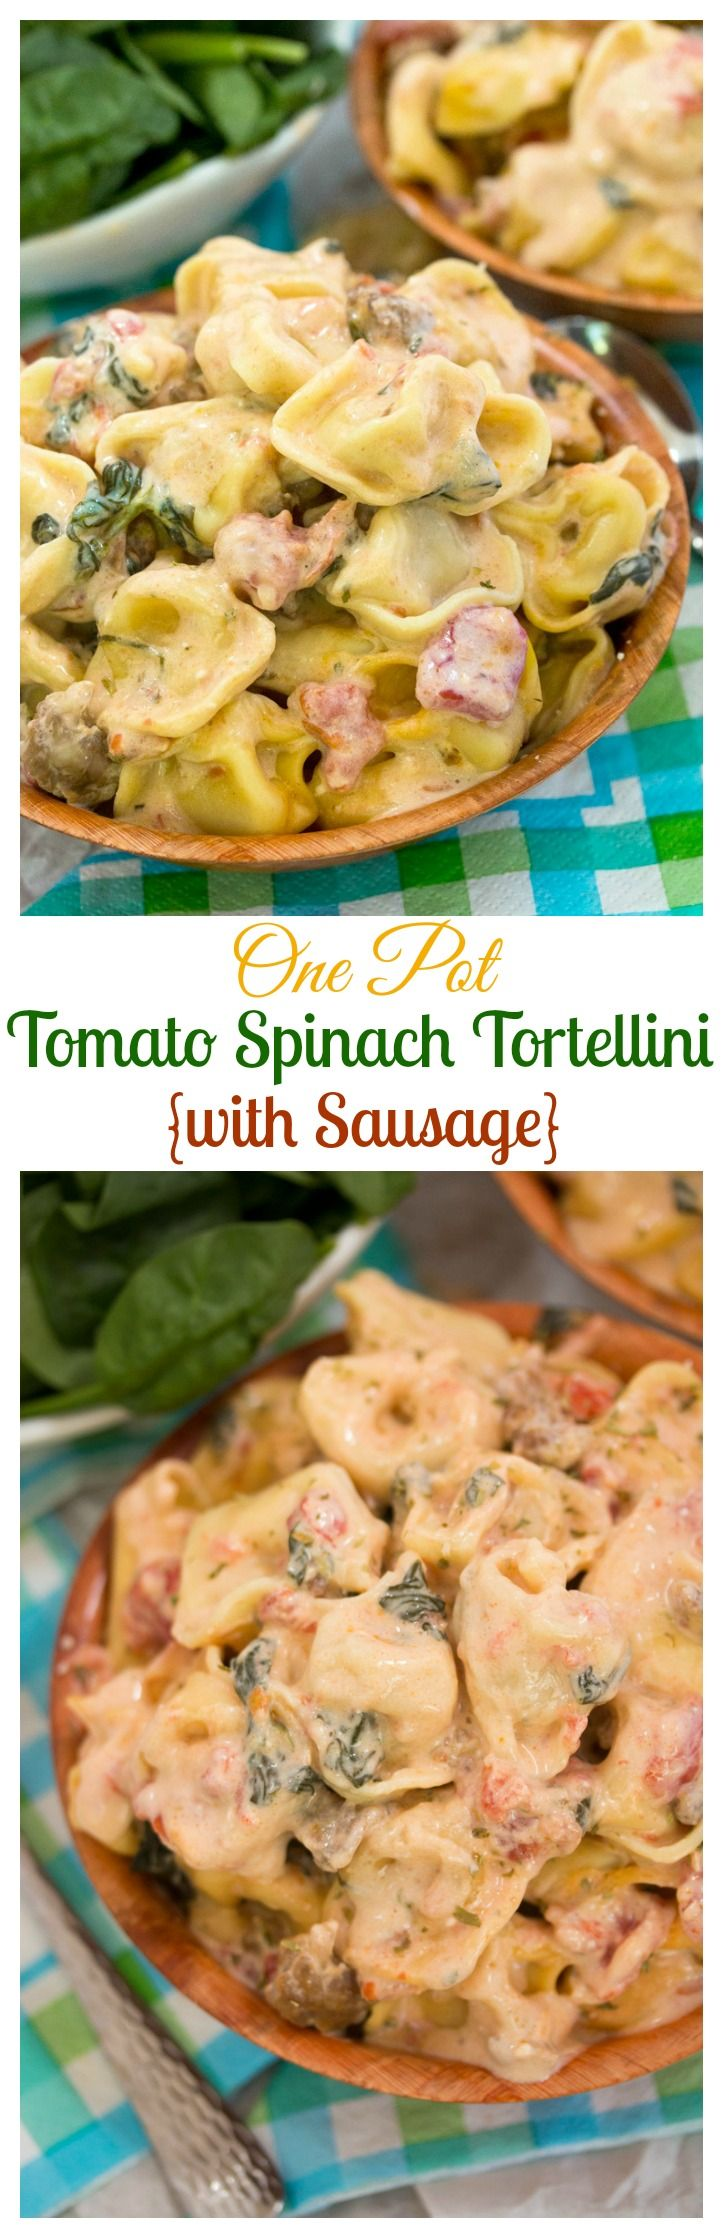 One Pot Tomato Spinach Tortellini {with Sausage}: Cheese-filled tortellini in a creamy sauce with tomatoes, spinach, and sausage, easily prepared in one pot or in the crock pot. (Ingredients Styling Crock Pot)